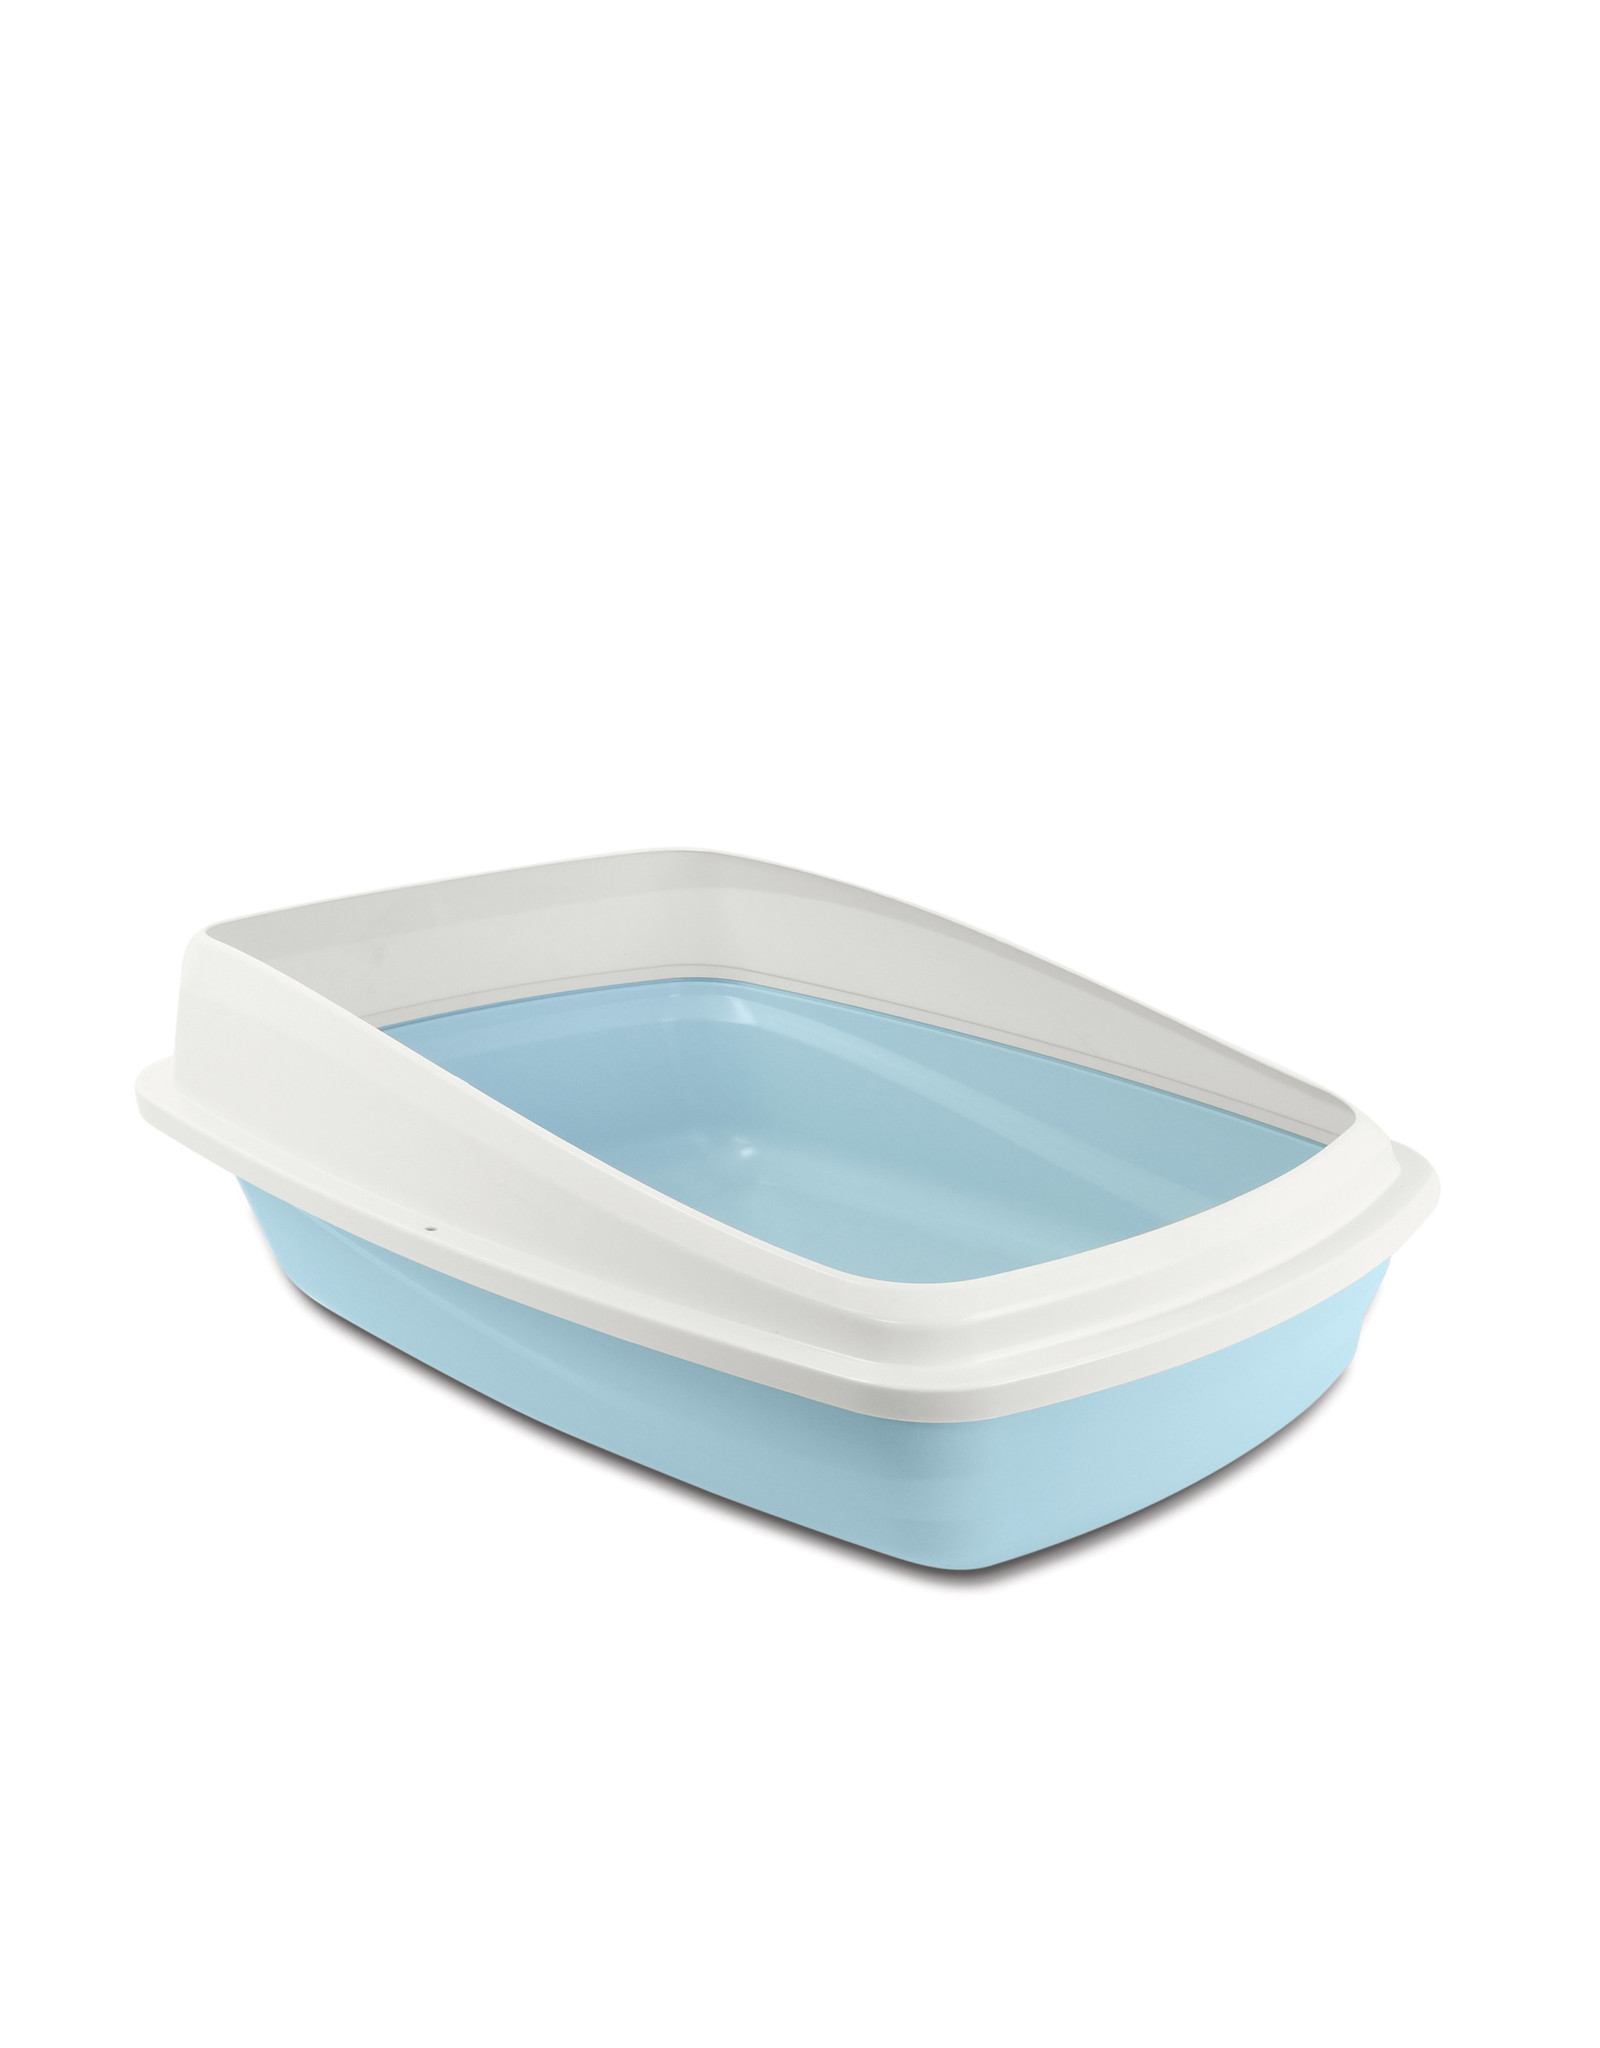 Cat Love Cat Pan with Removable Rim Large Blue/Grey